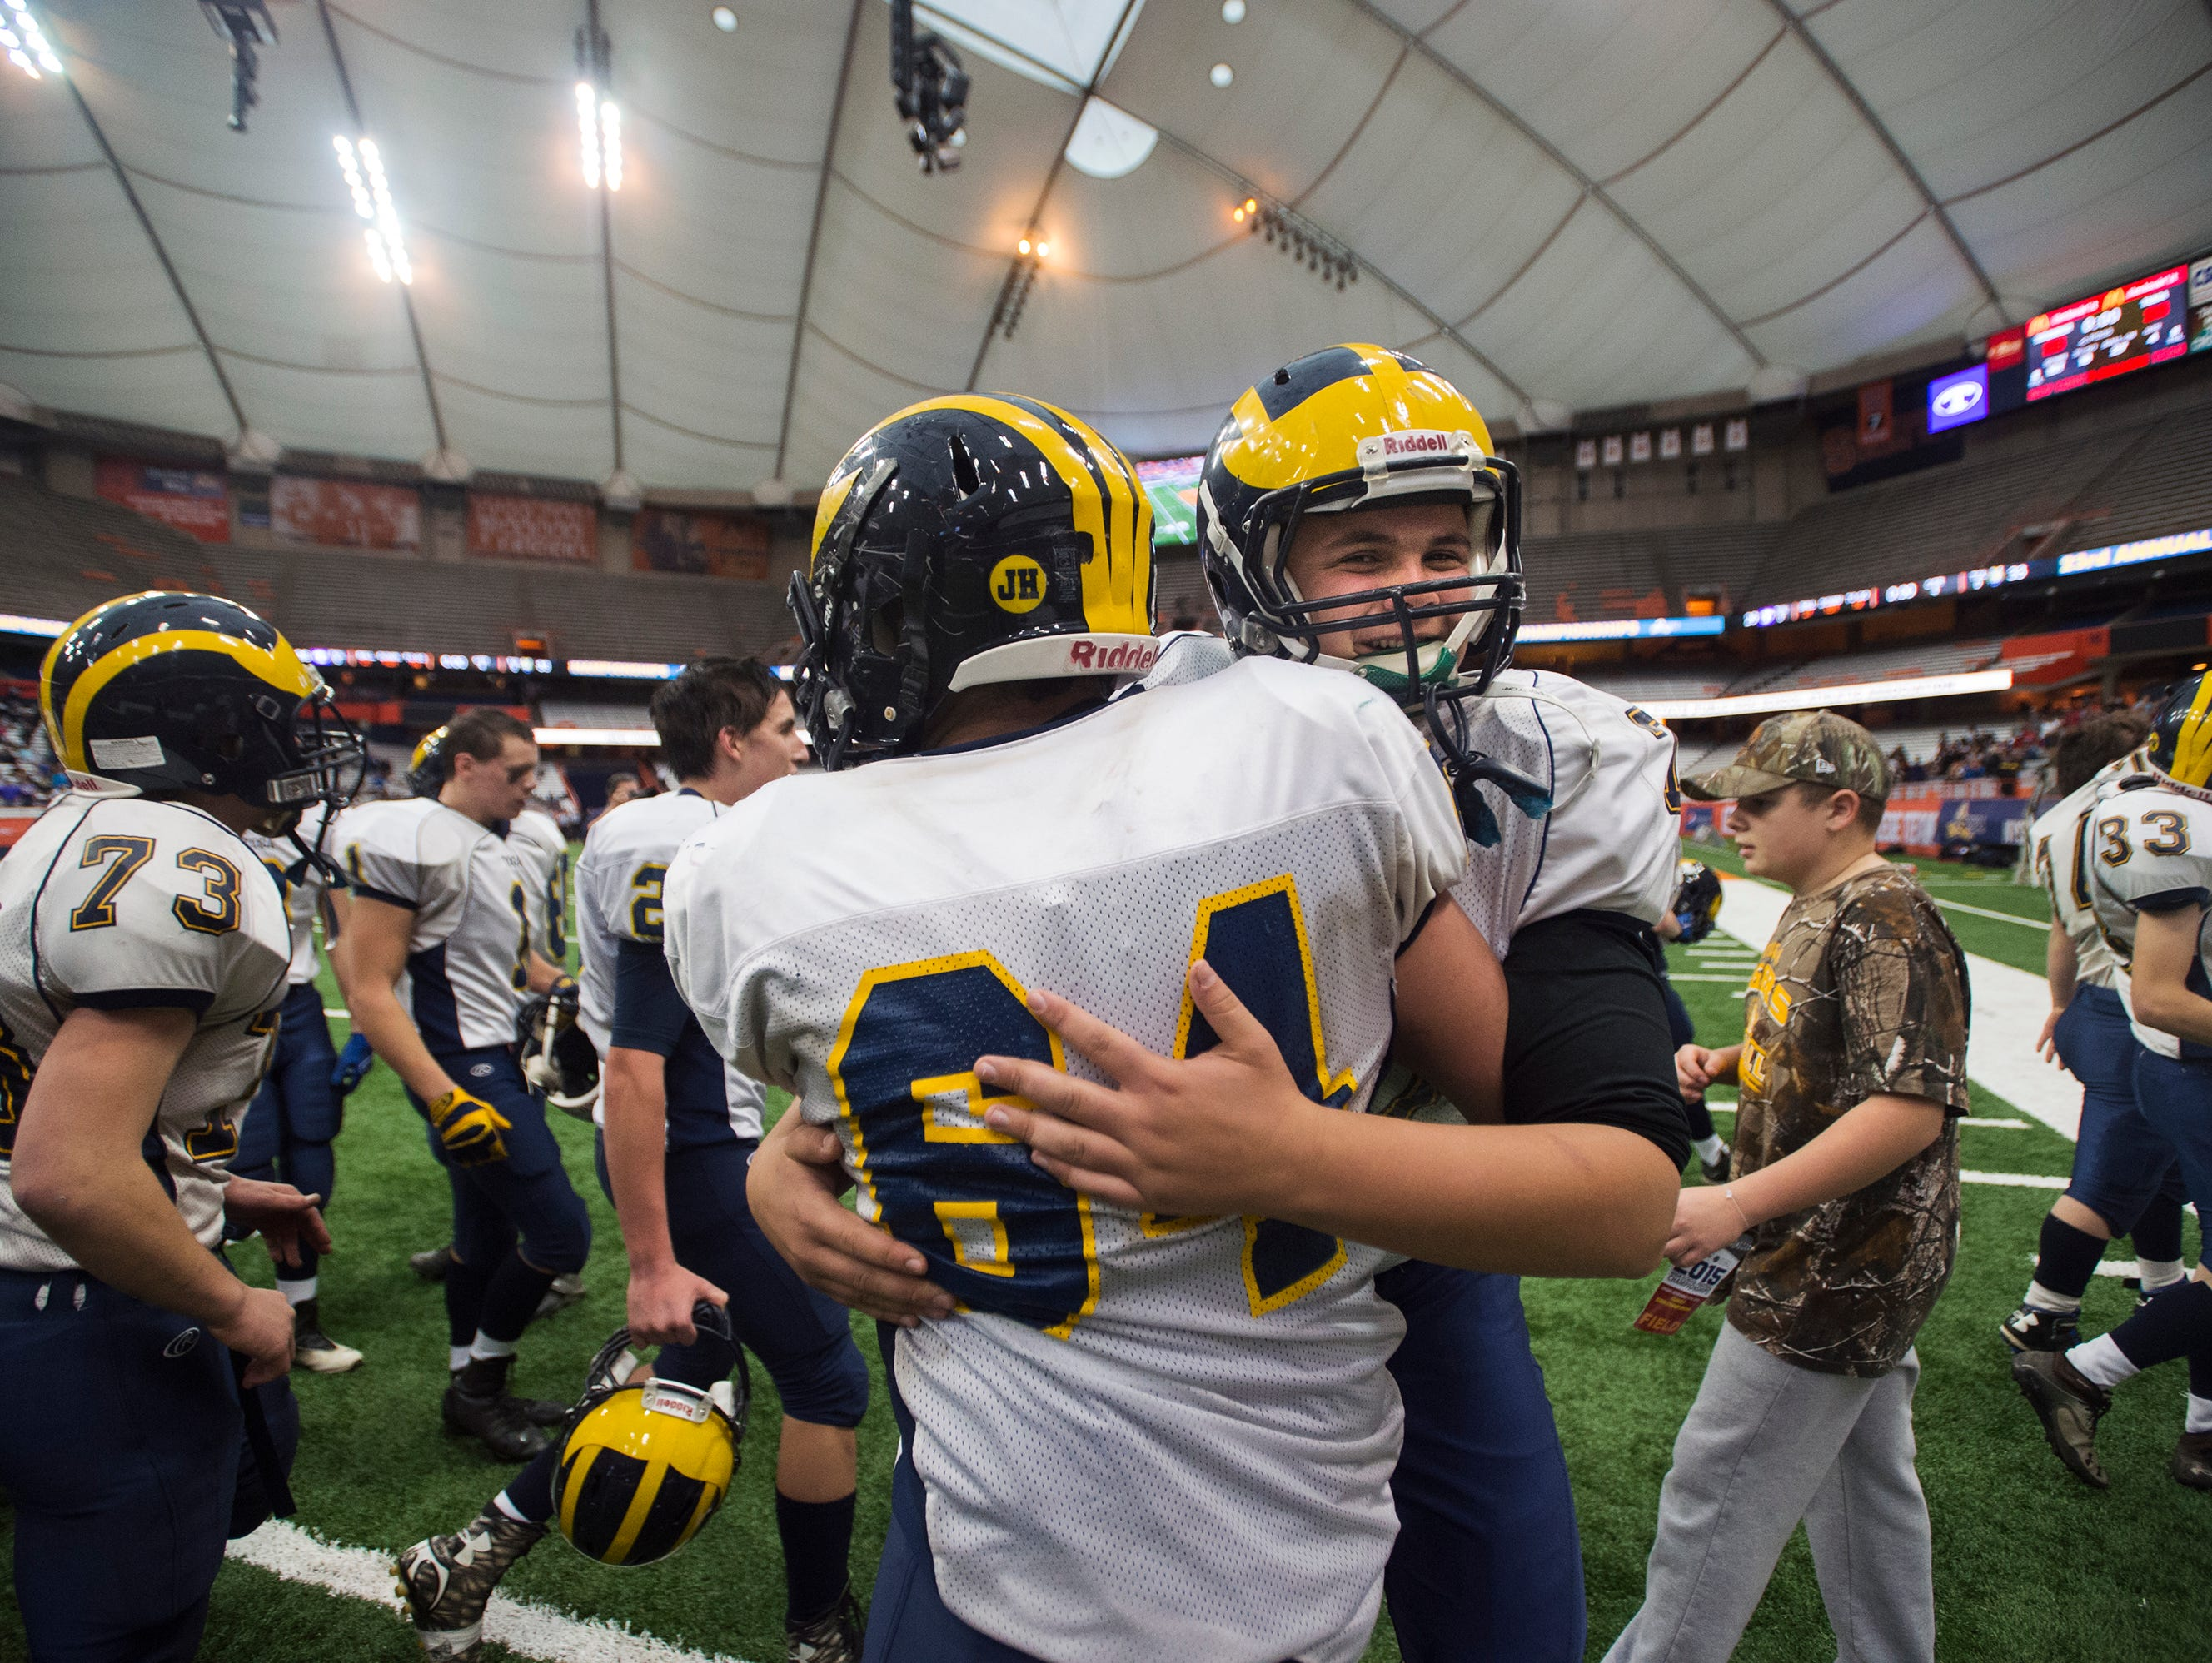 Tioga players Peter Kuhlman, right, and Caleb Manwaring hug after beating Ticonderoga 33-26 to win the 2015 Class D State Championship in Syracuse on Friday, Nov. 27, 2015.